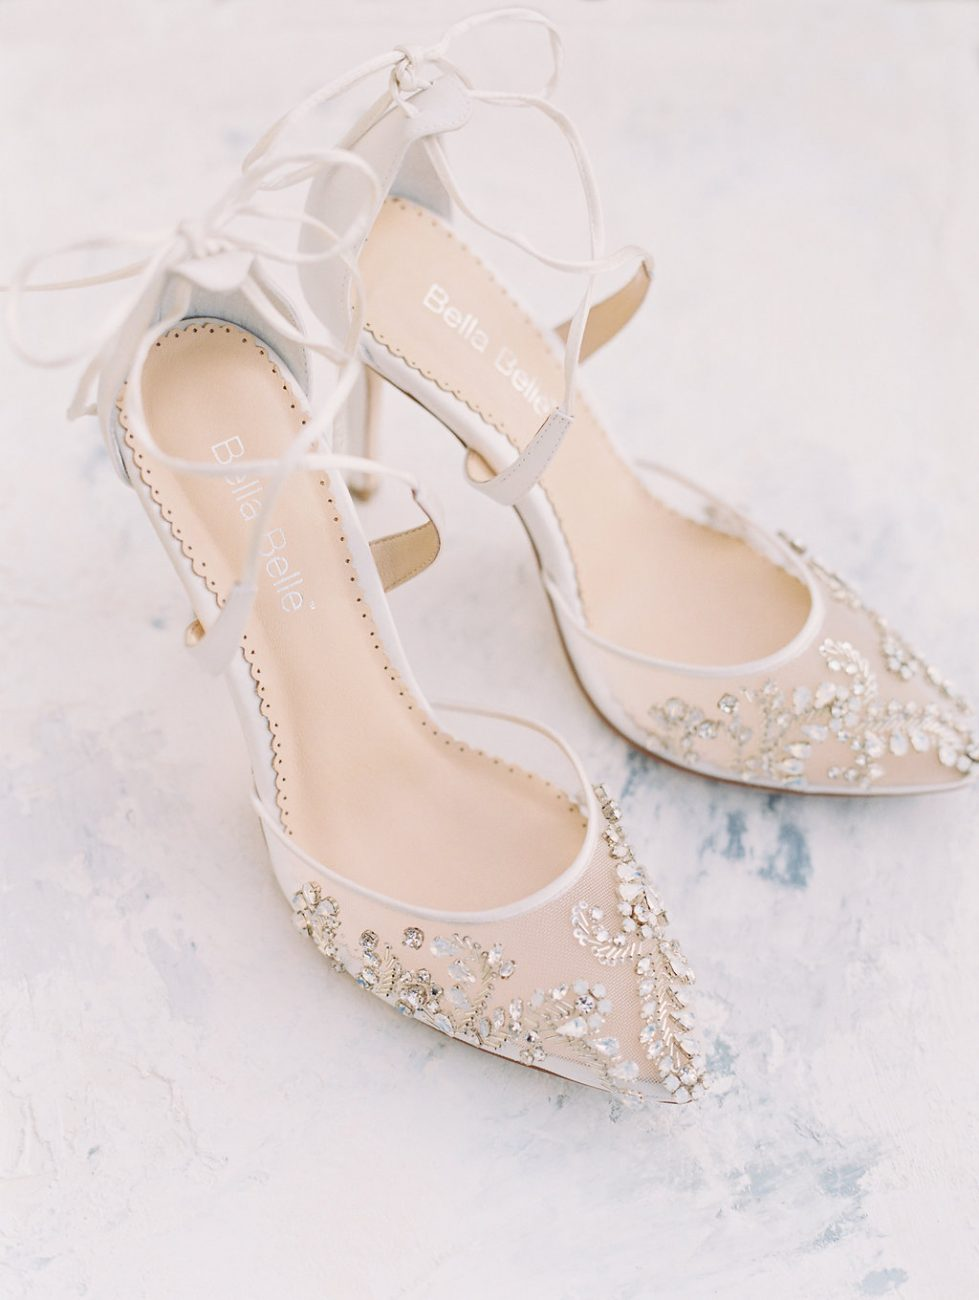 Orange Country wedding inspiration shoes